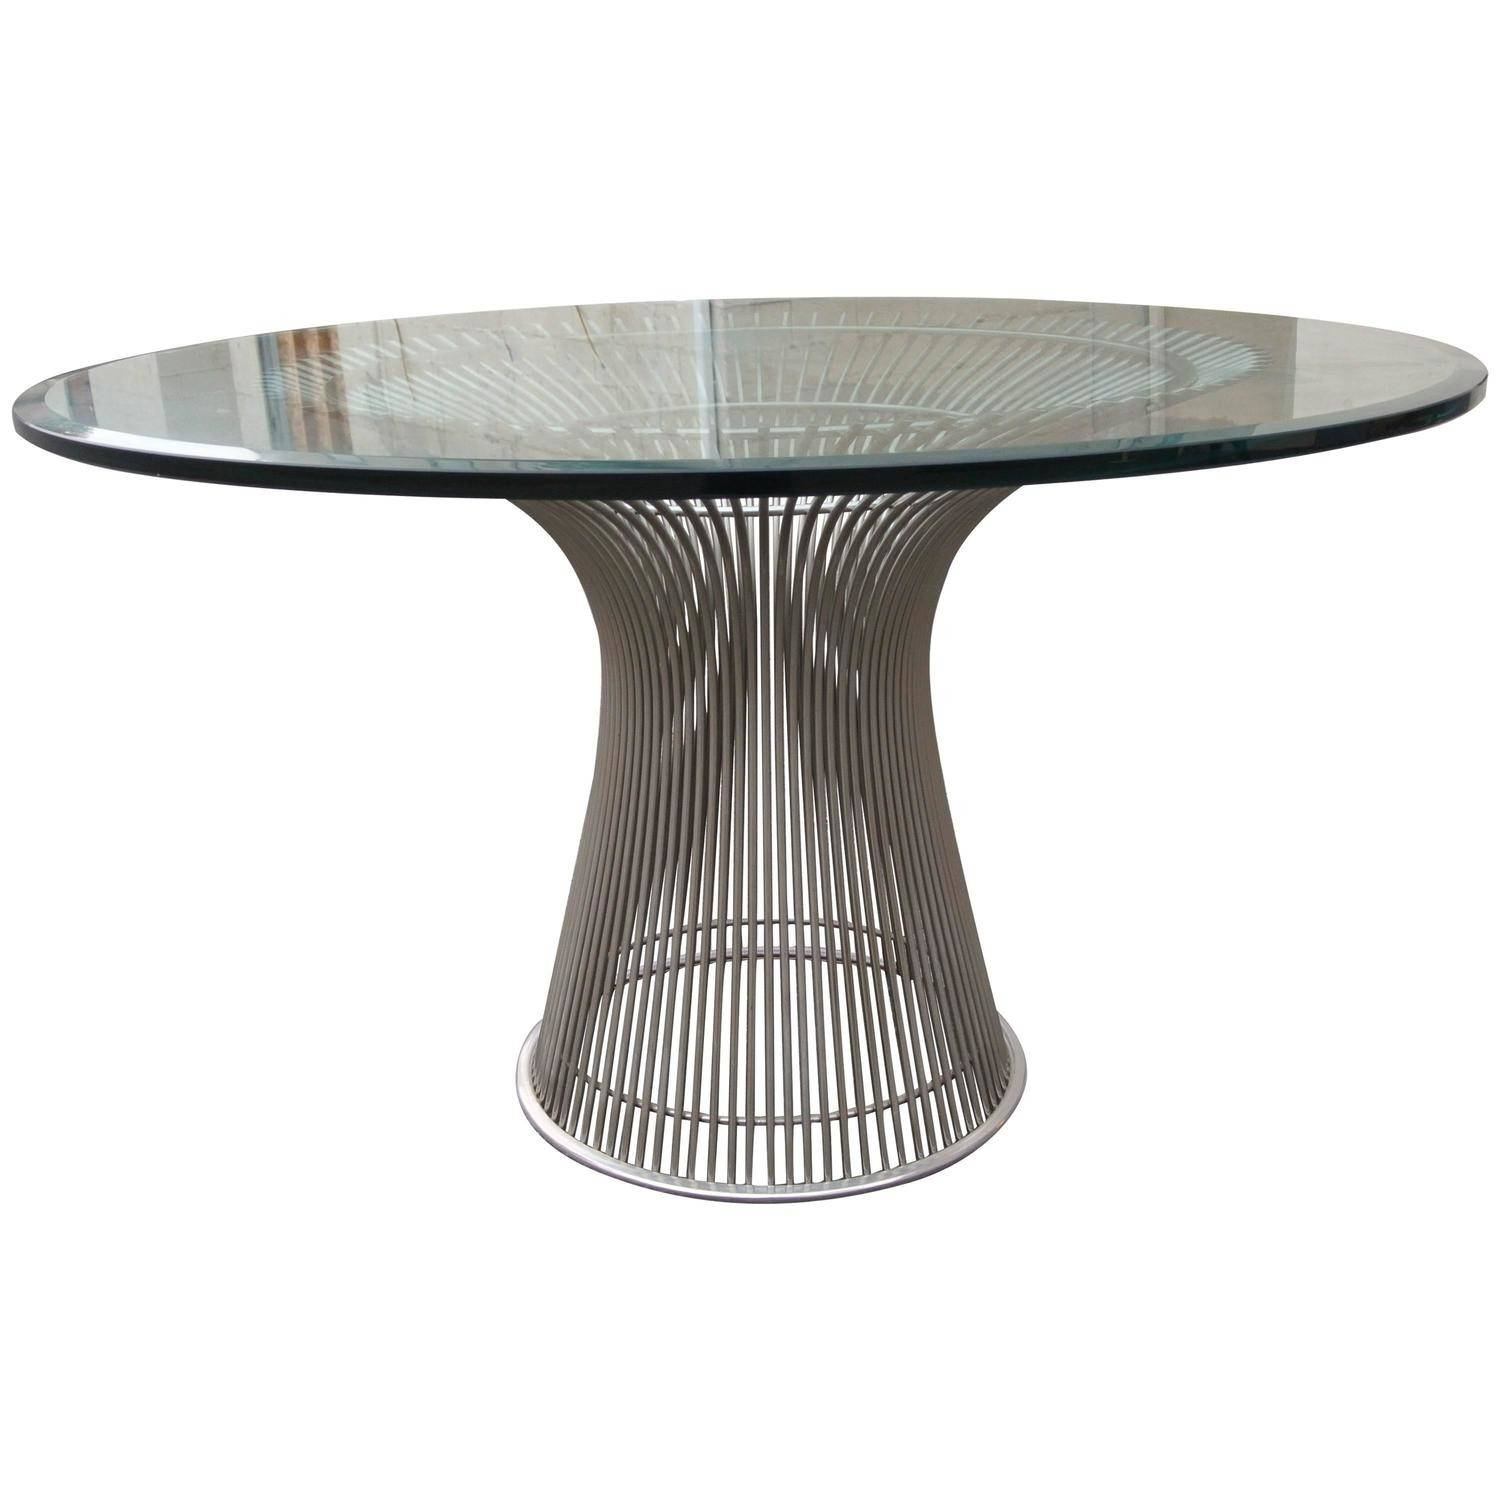 Dining Table Warren Platner Stdibs